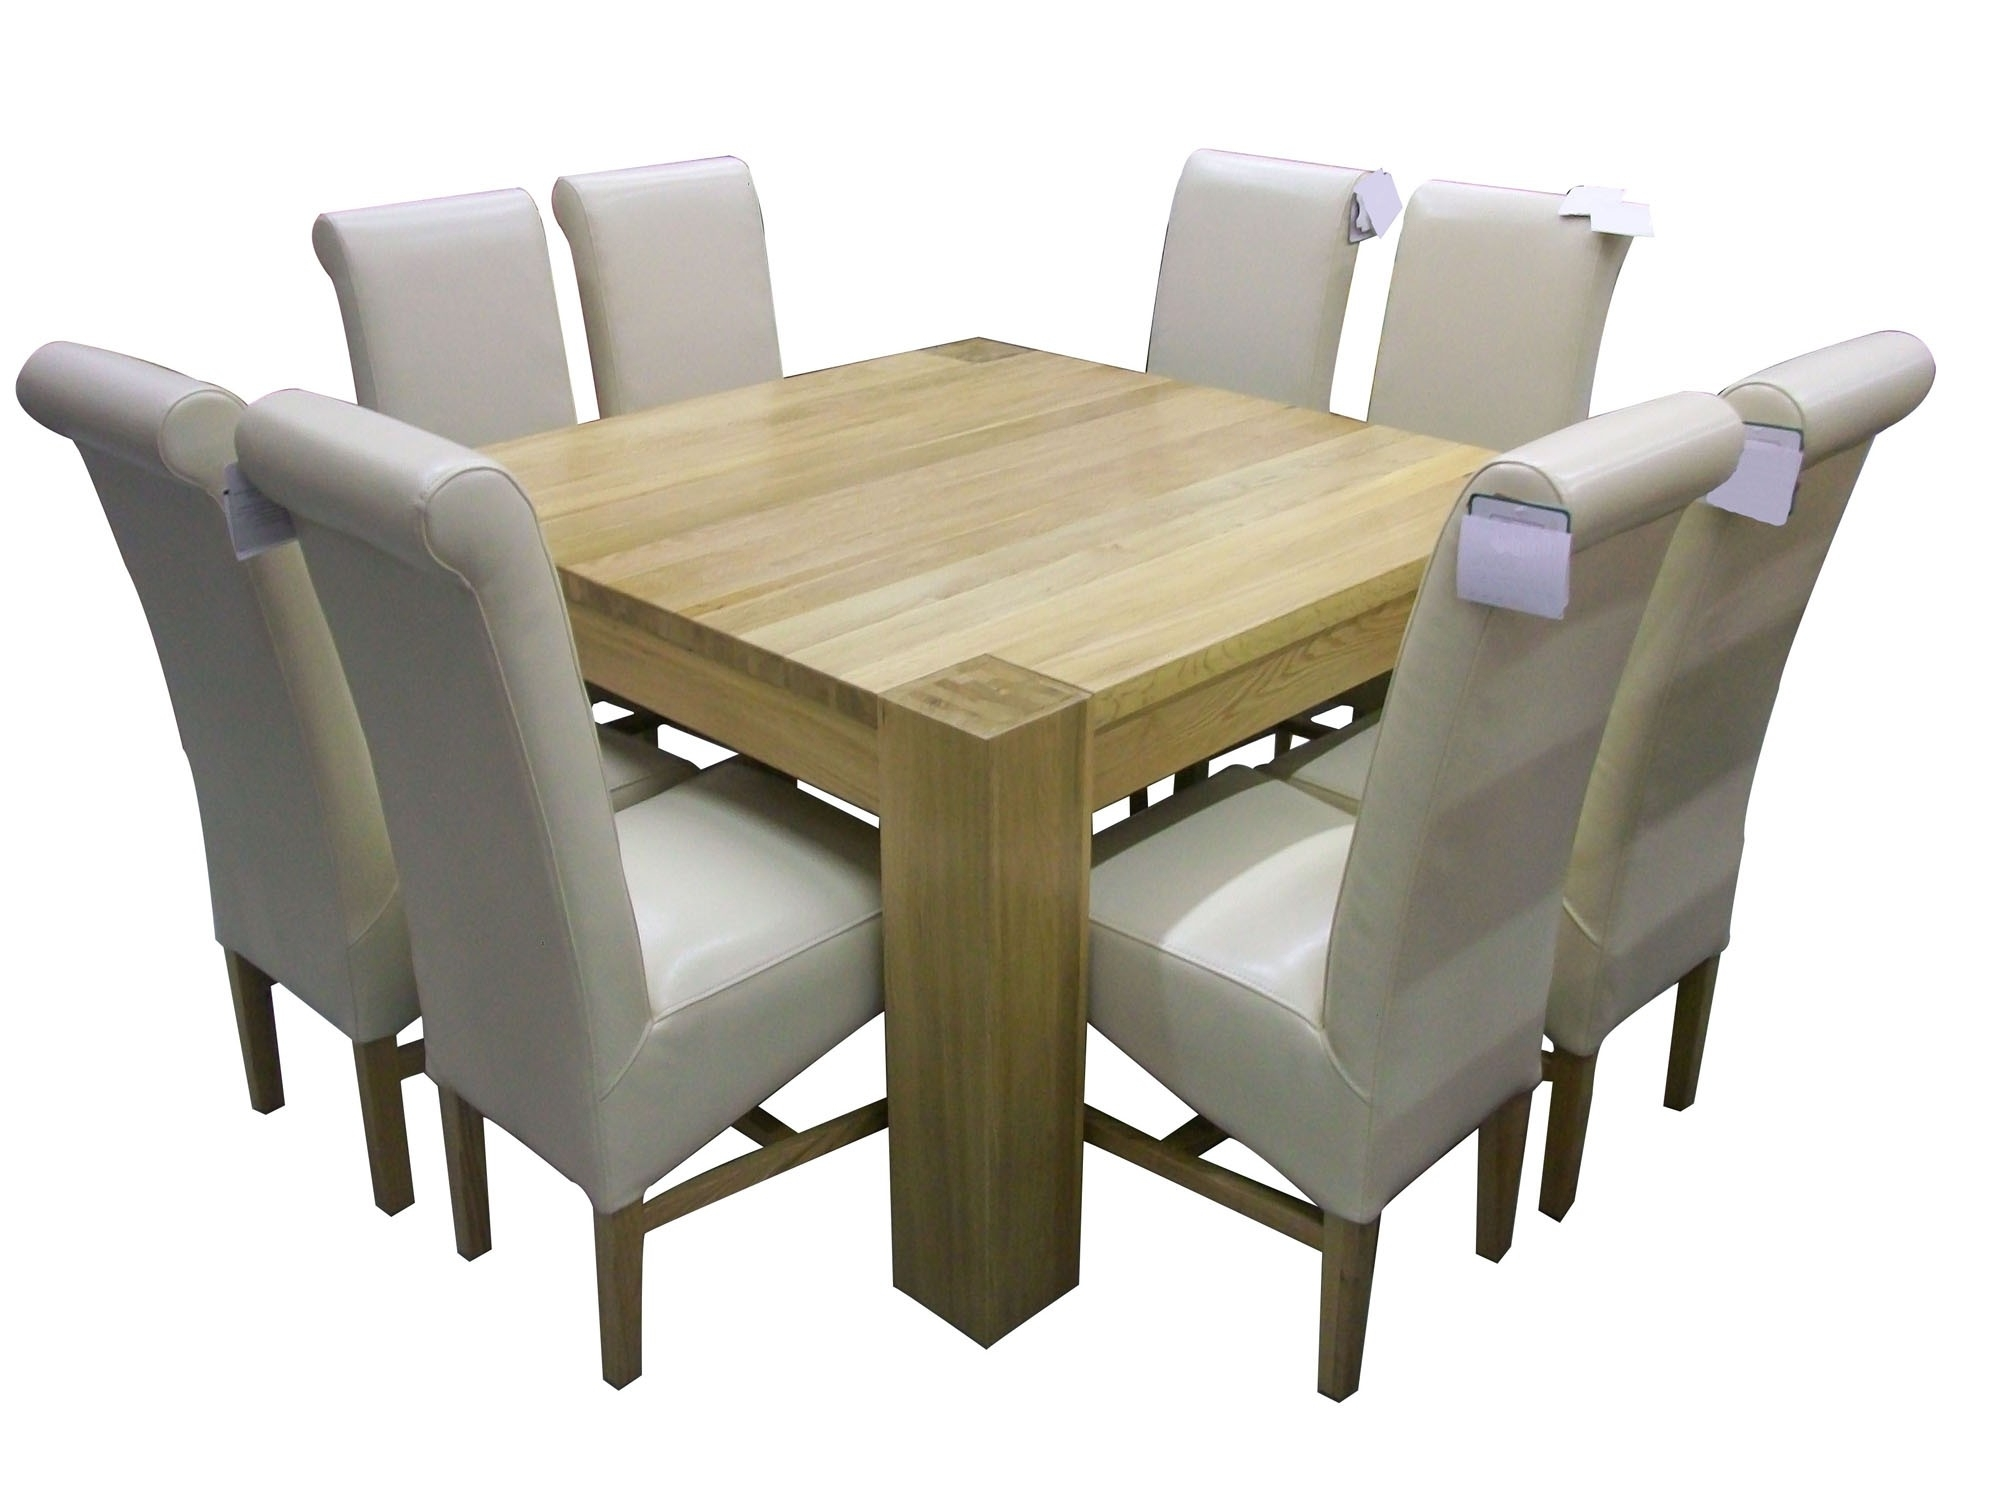 Oak Dining Tables 8 Chairs Inside Latest Solid Oak Dining Room Table And 8 Chairs Inspirational White Square (View 10 of 25)